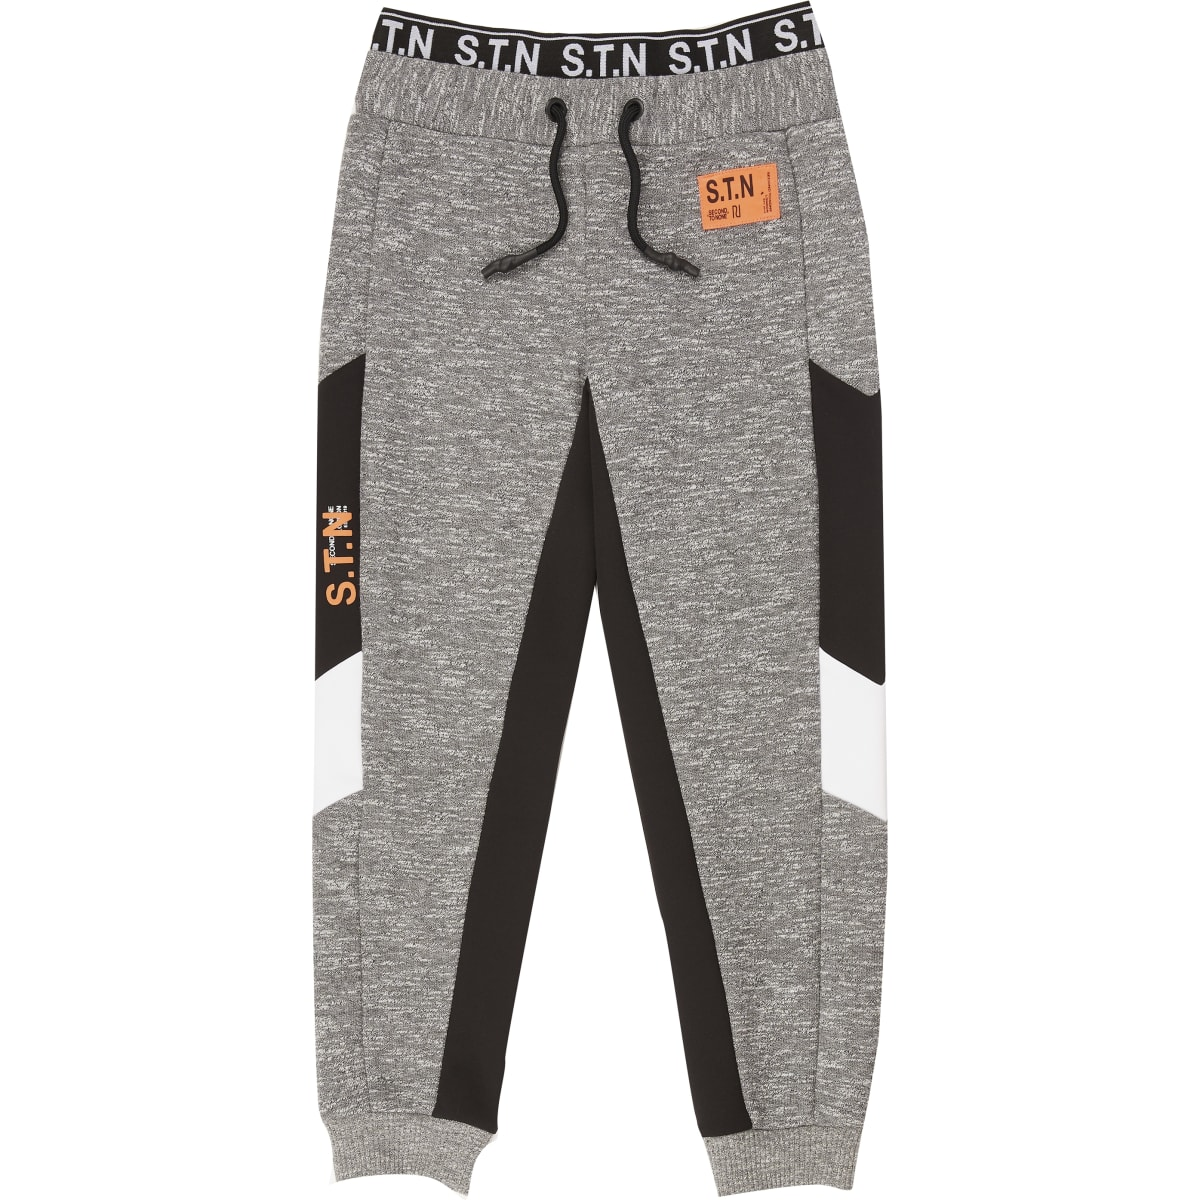 Boys RI Active grey STN grindle jogger